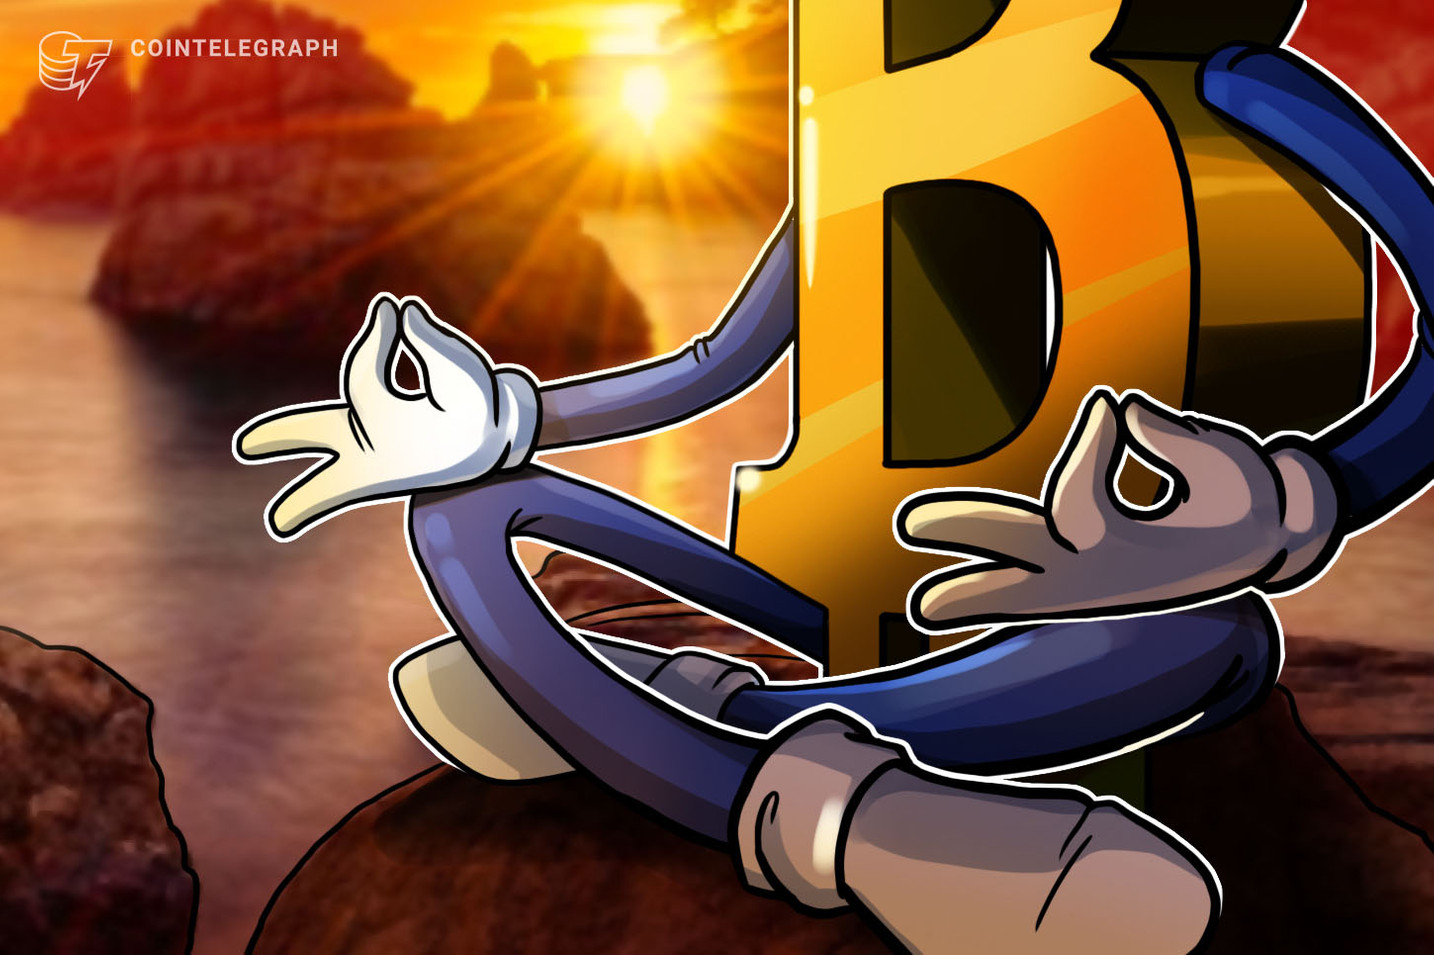 Bitcoin Price Fighting to Close Week Above Key $7,200 Resistance Level